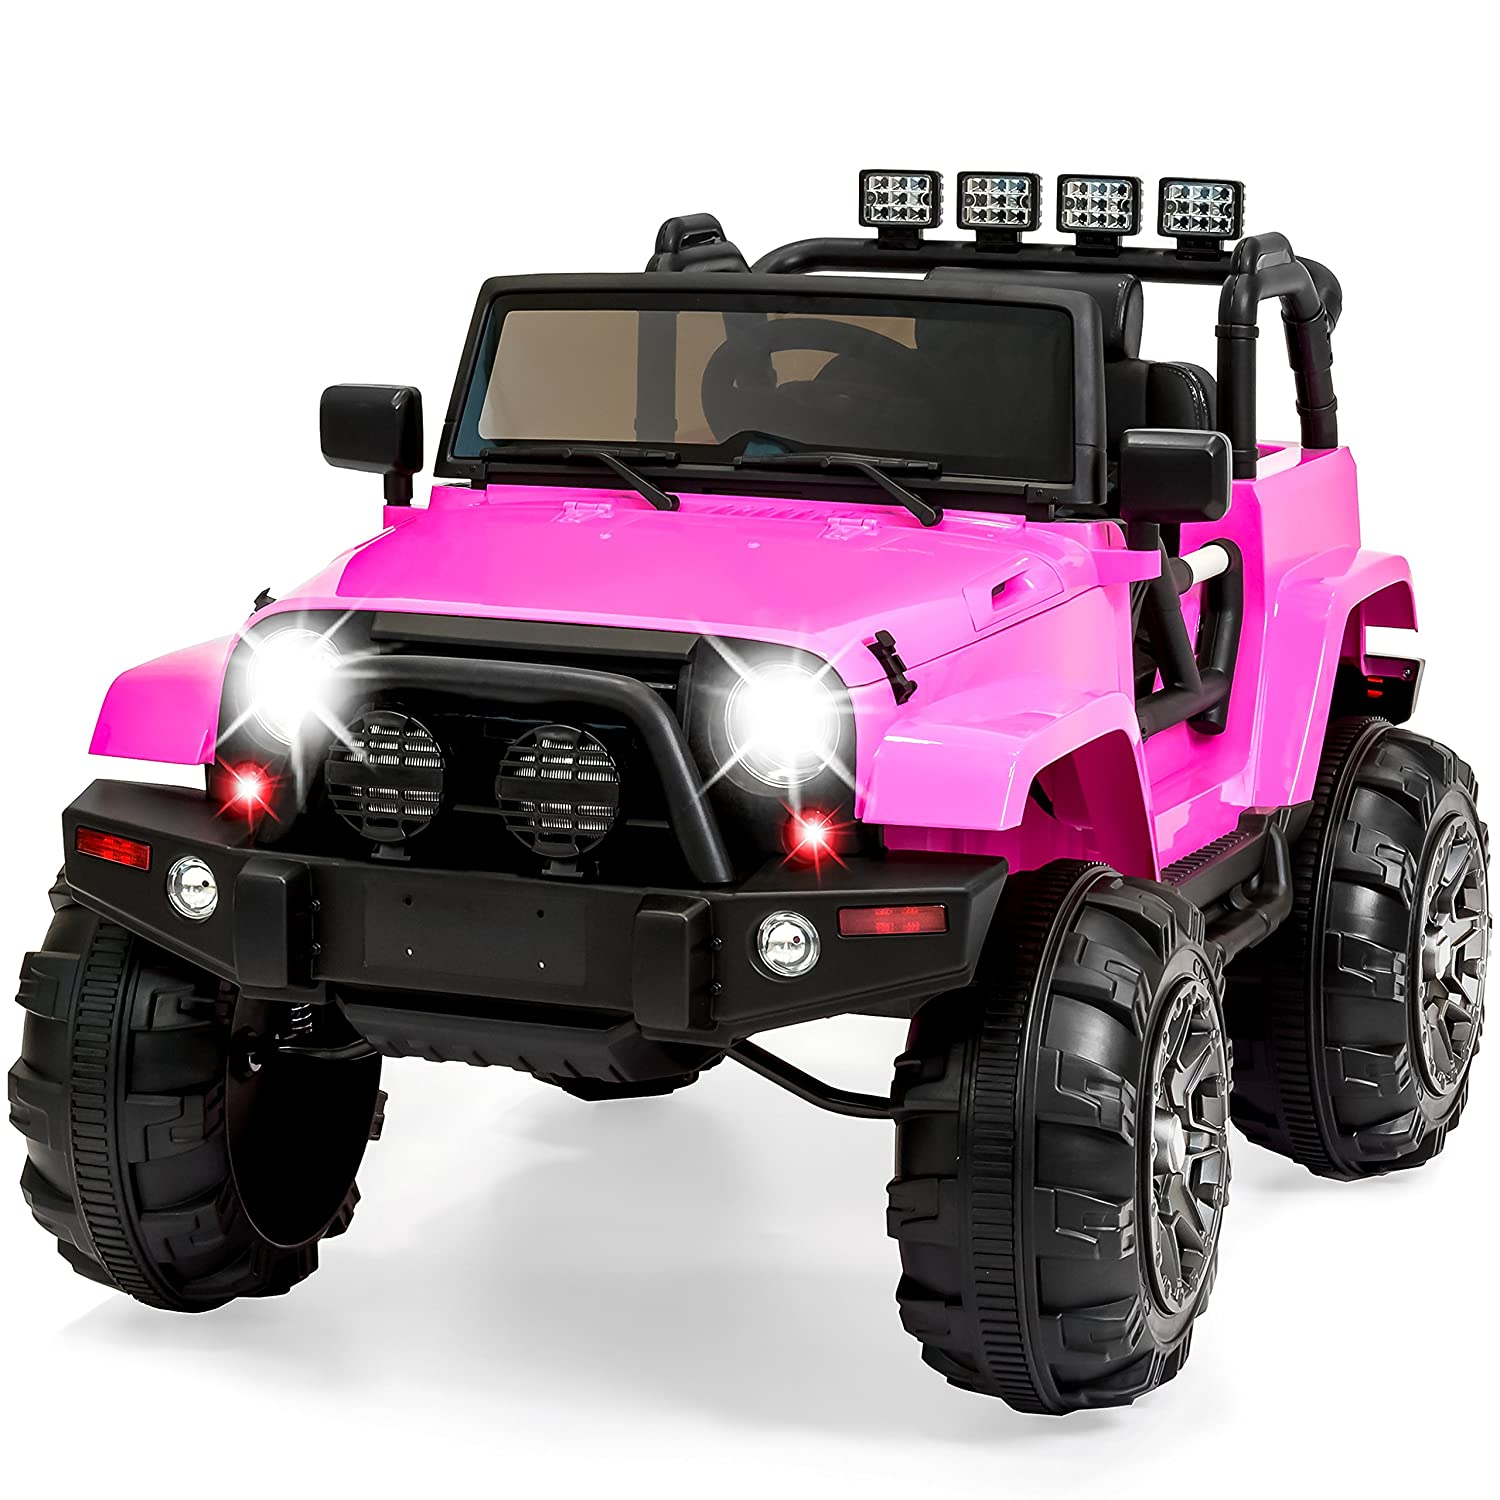 Best Choice Products 12v Kids Ride On Truck Car W 48 Volt Club 252 Wiring Diagram Remote Control 3 Speeds Spring Suspension Led Lights Aux Pink Toys Games